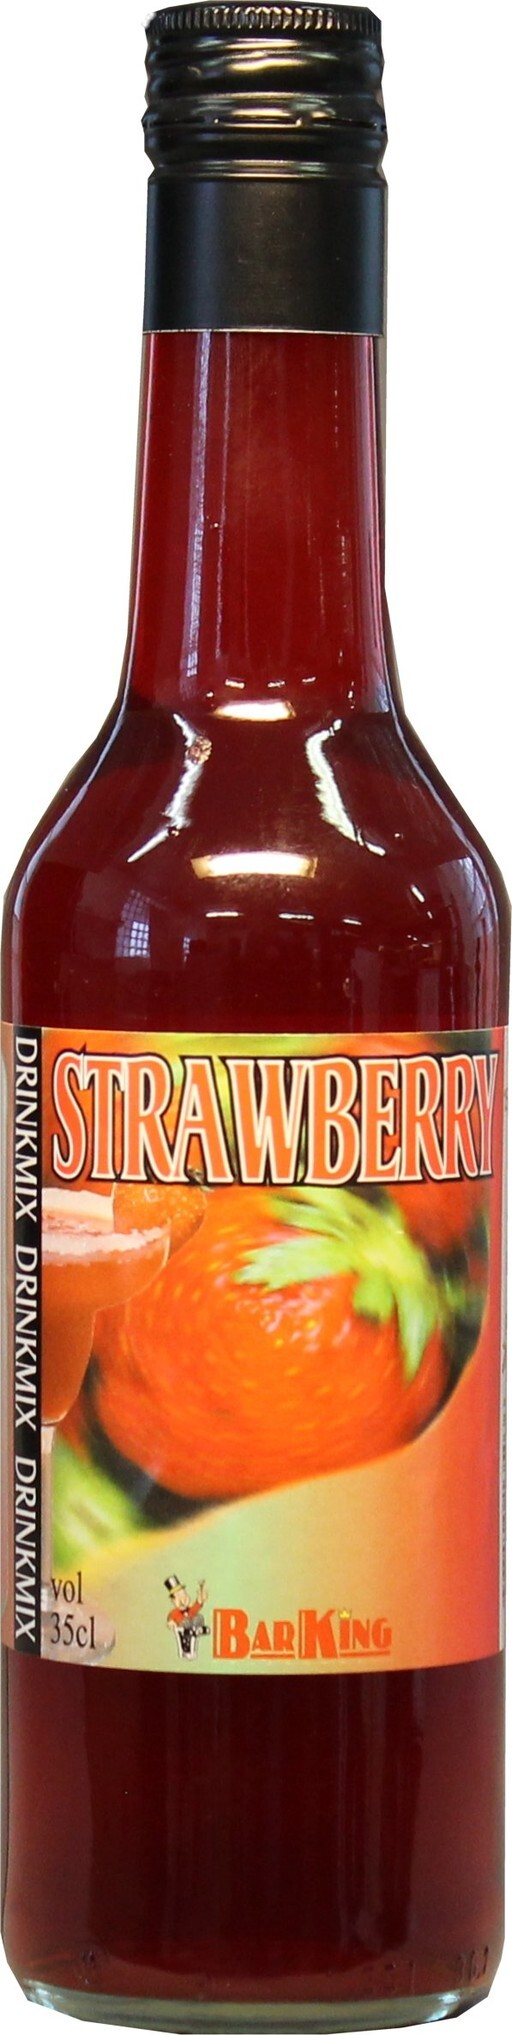 Strawberry 35 cl